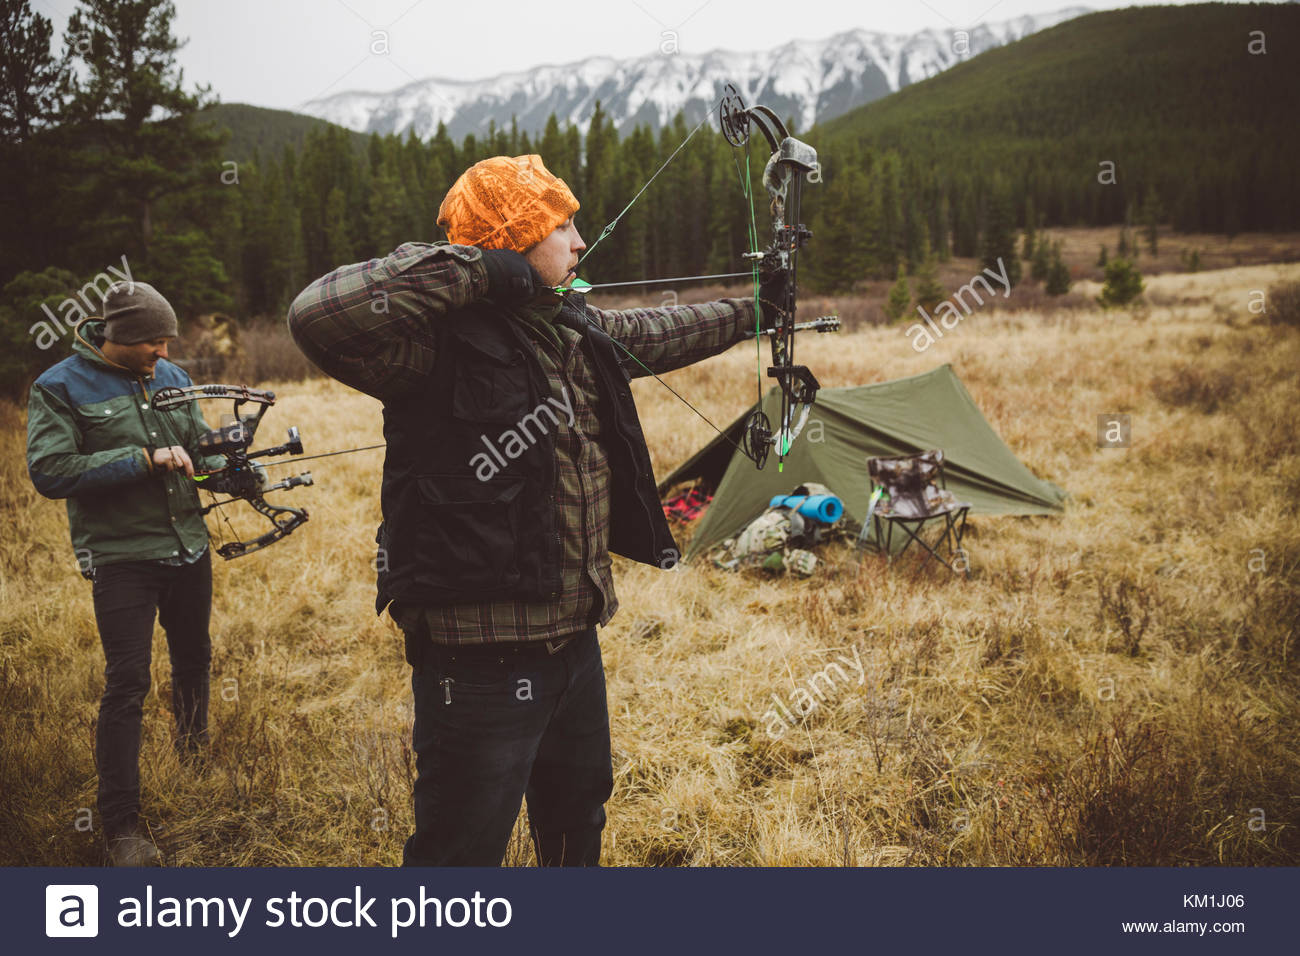 Male hunter friends aiming hunting compound bows outside tent at campsite in remote field below mountains - Stock Image